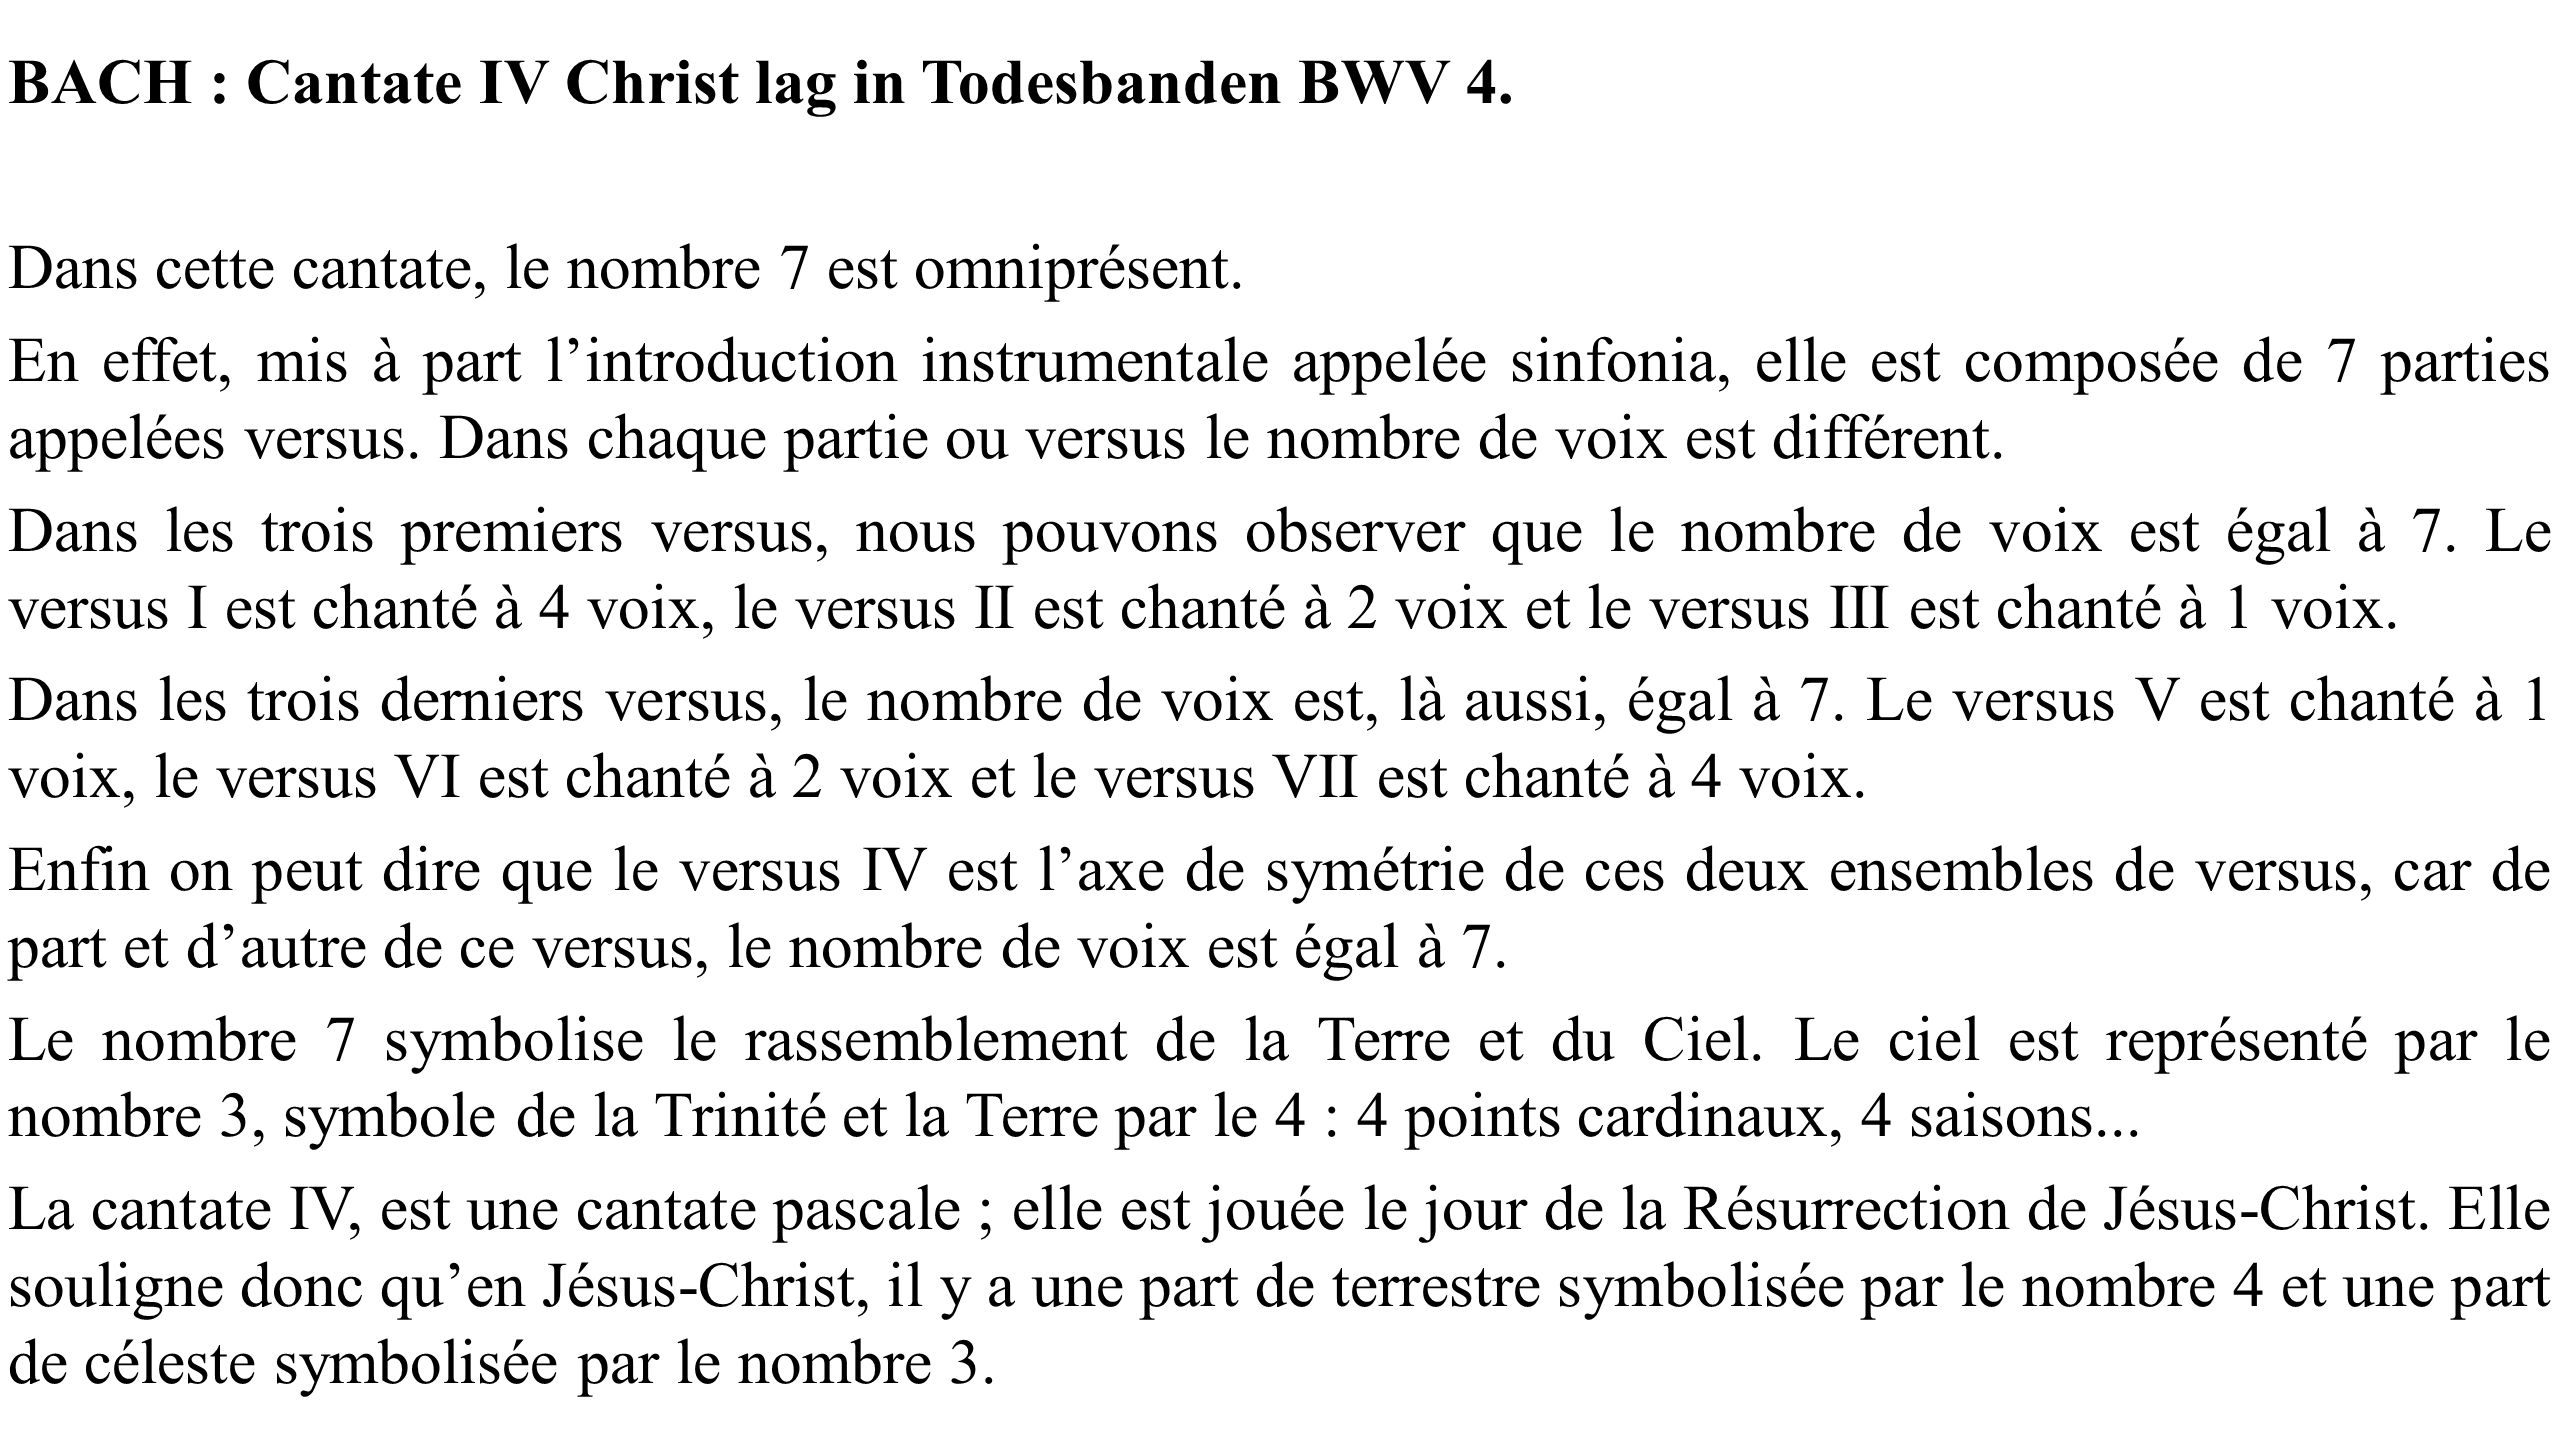 BACH : Cantate IV Christ lag in Todesbanden BWV 4.